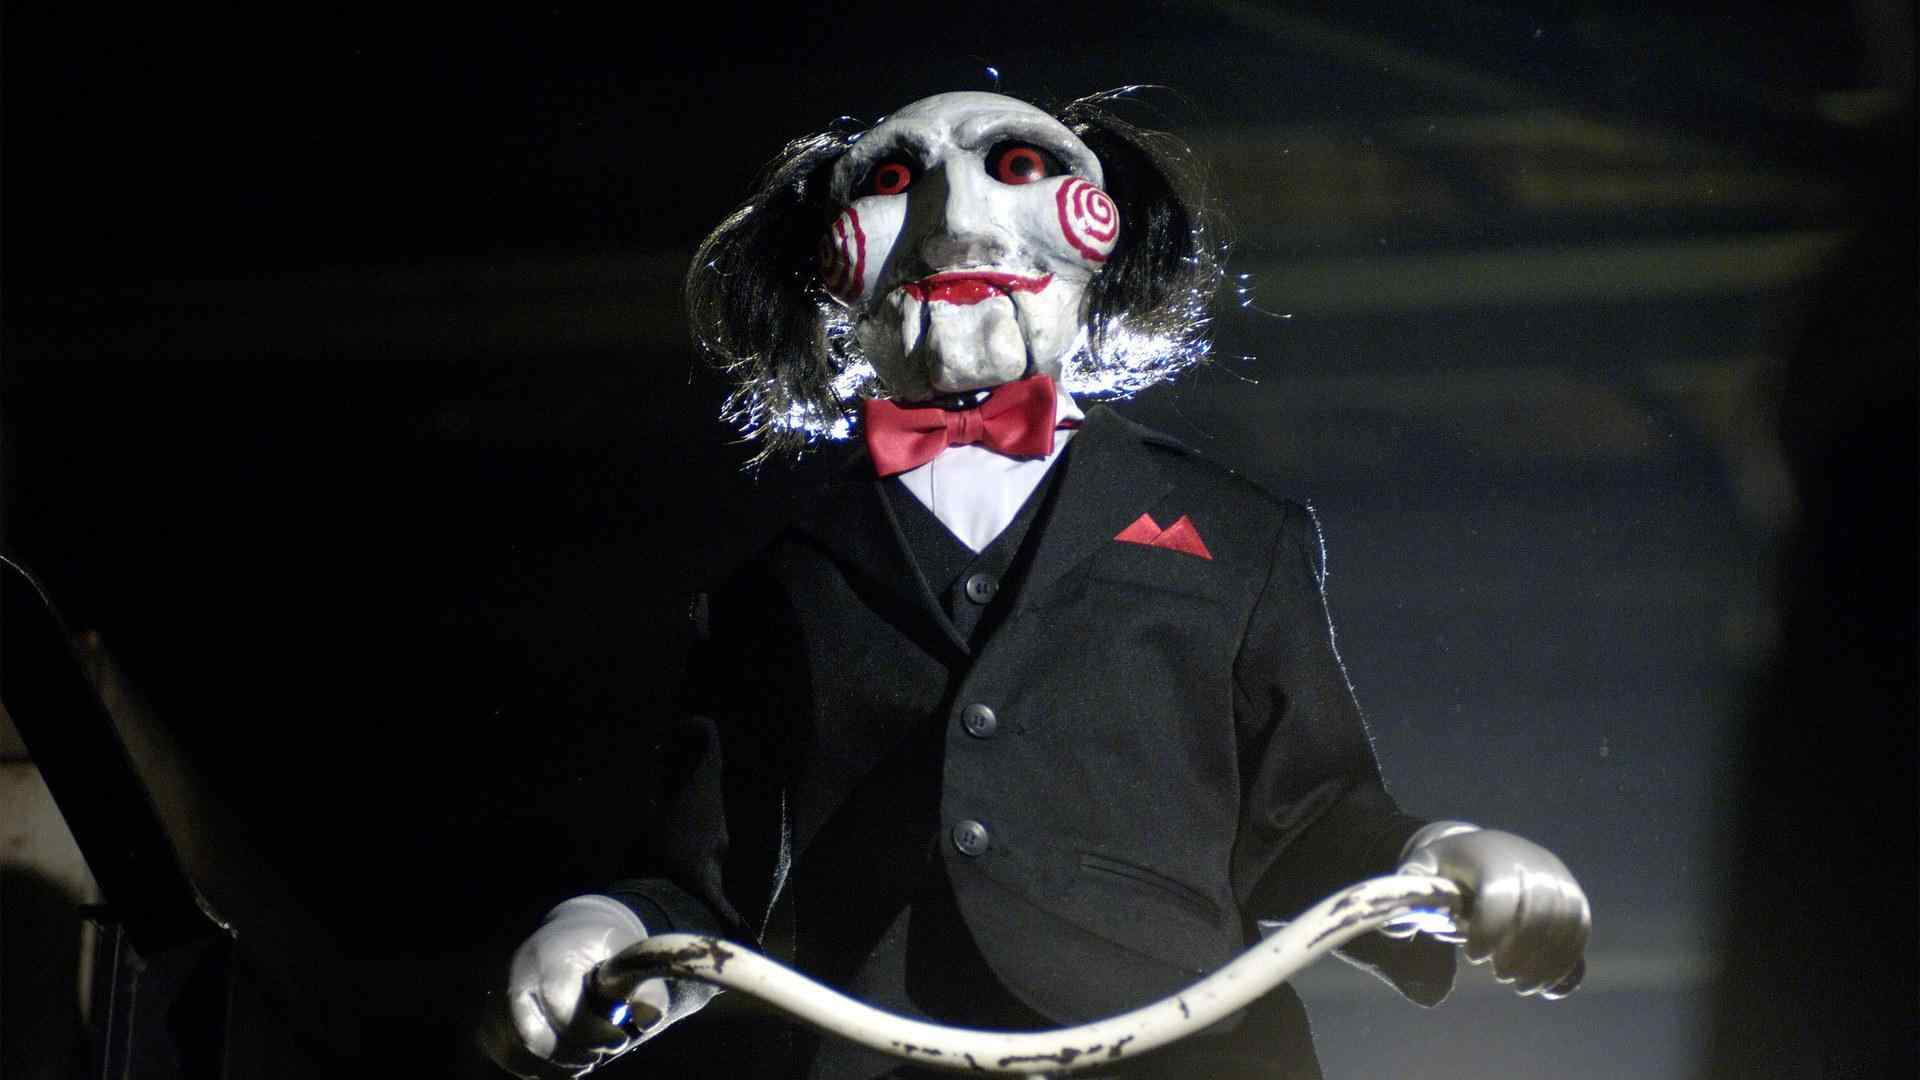 Billy the puppet in the hit Saw movie franchise.